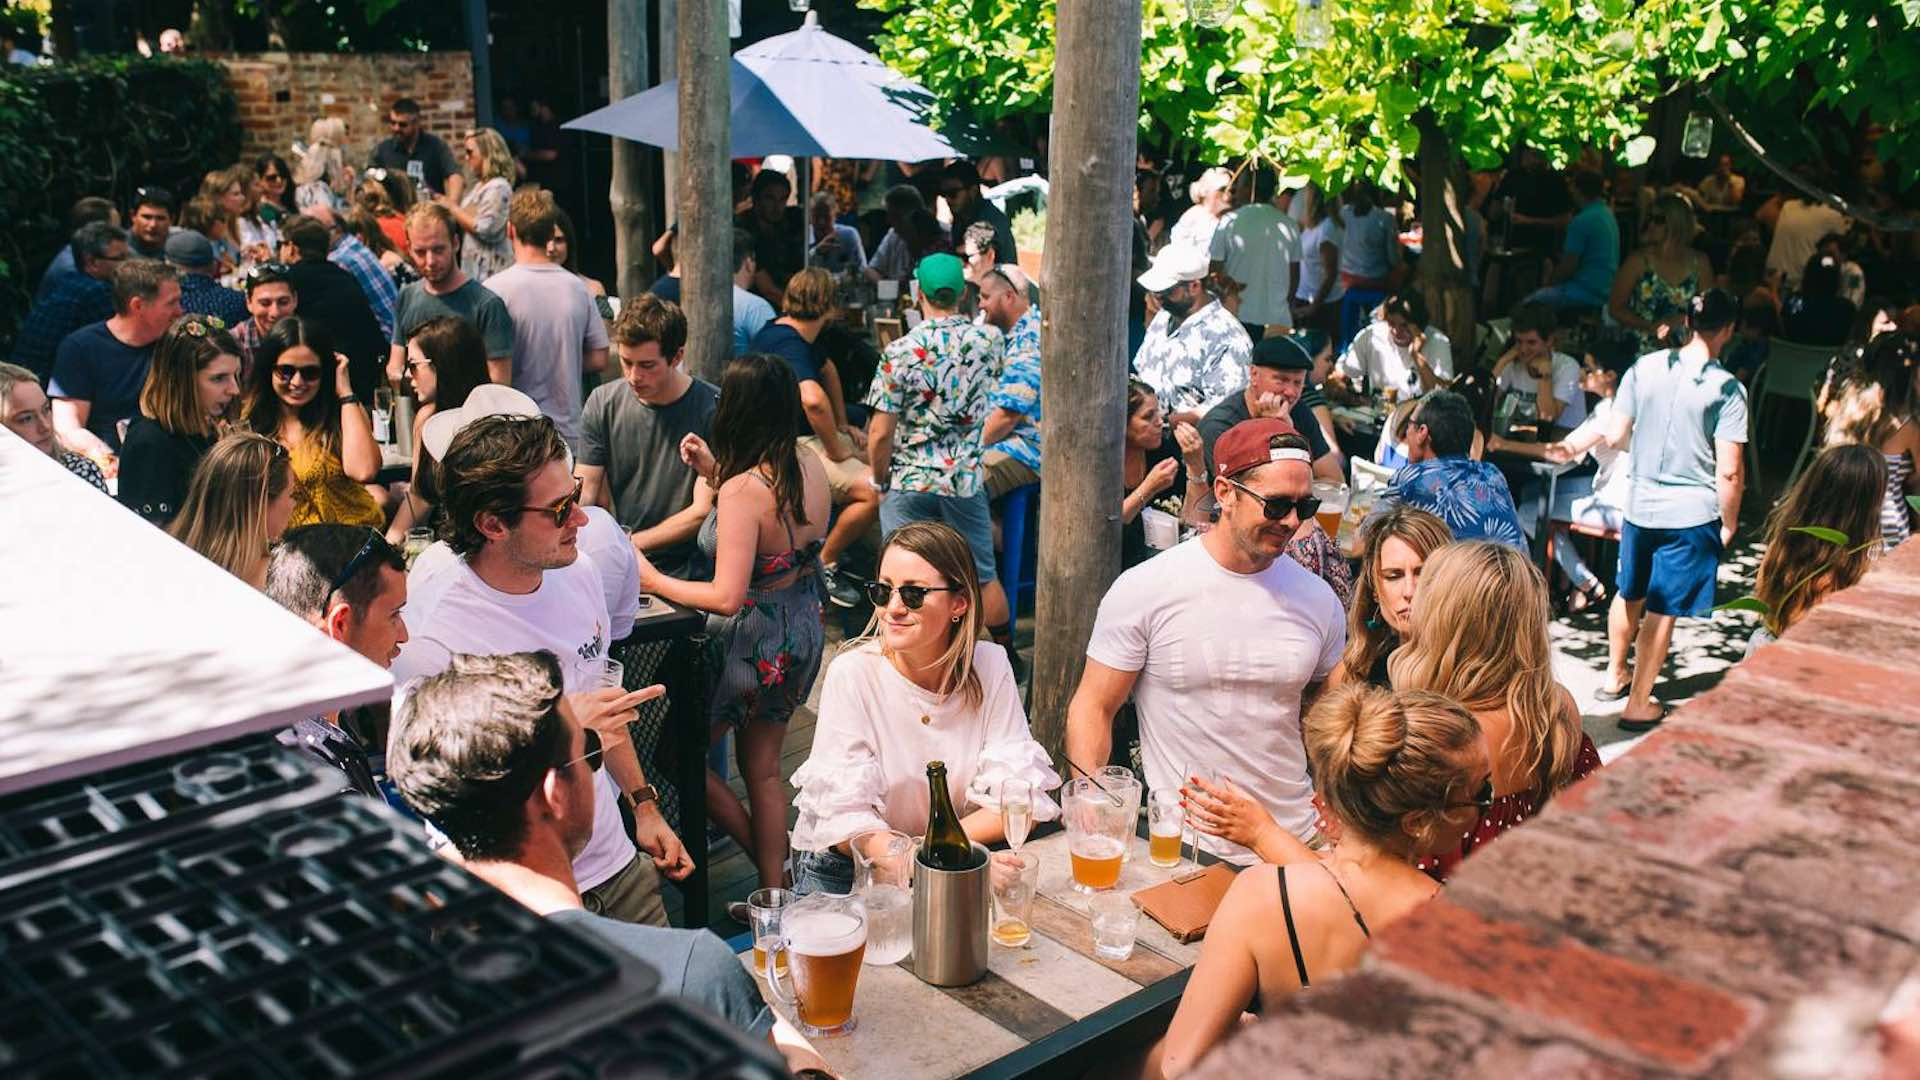 Beer garden at the Rosemount Hotel Perth